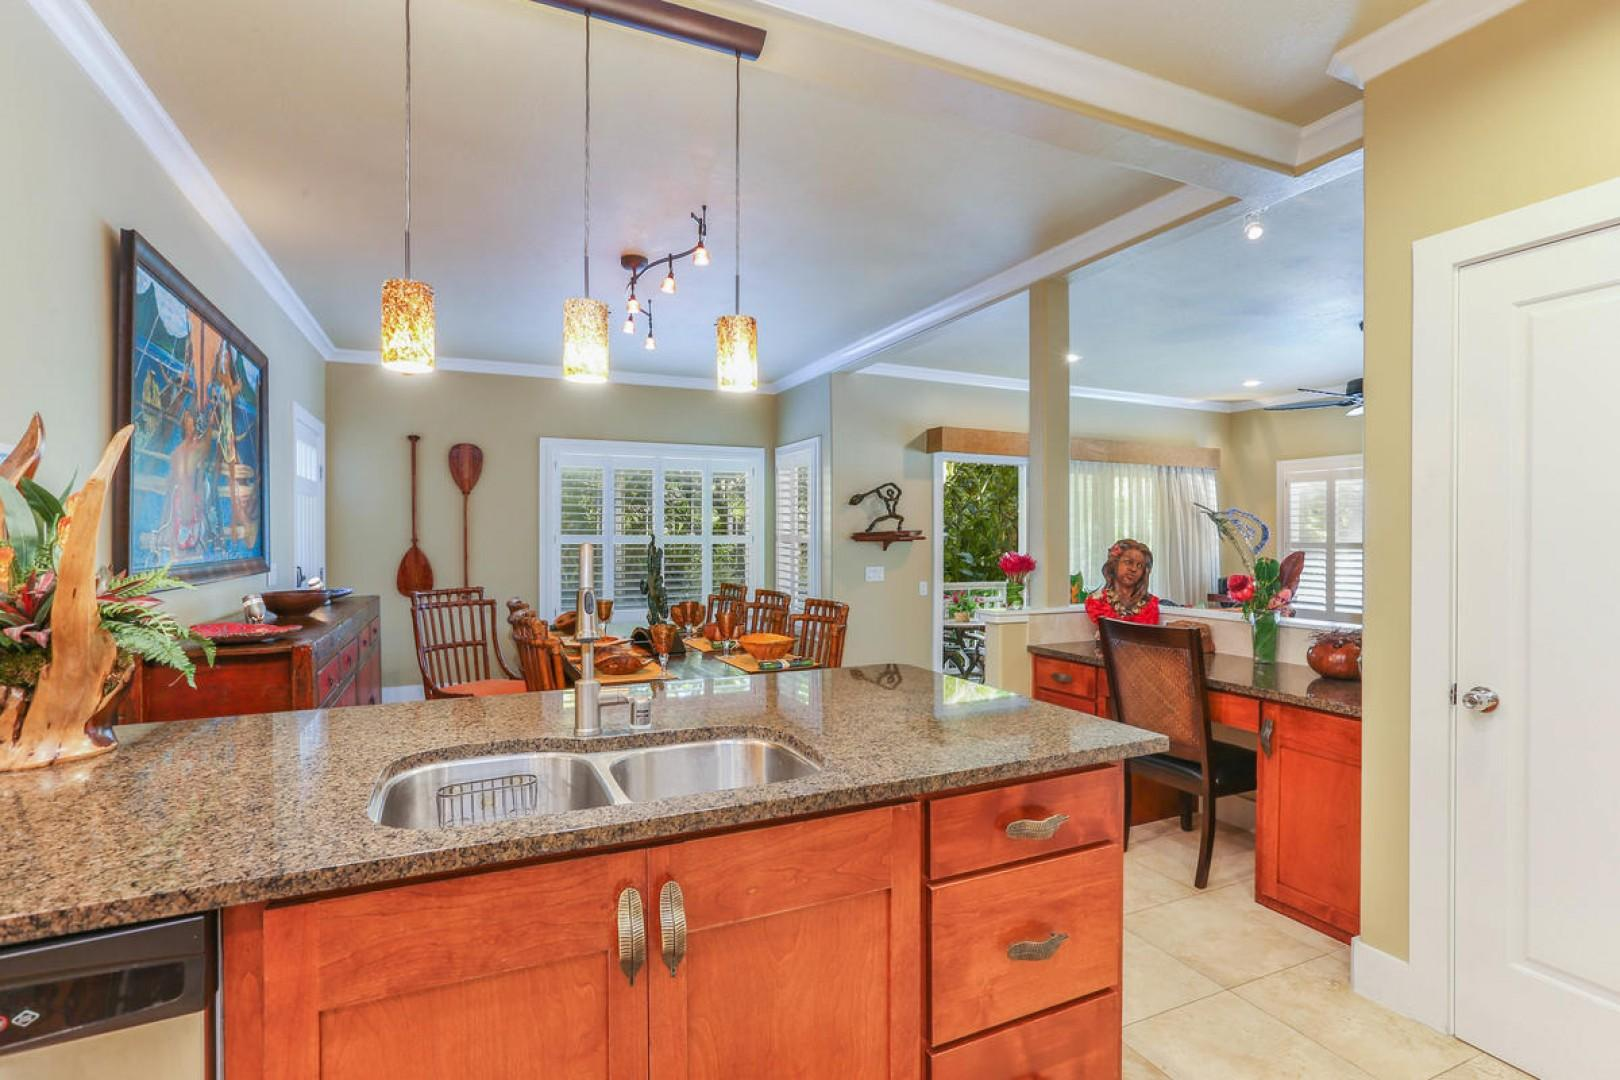 Open kitchen leading into dining area